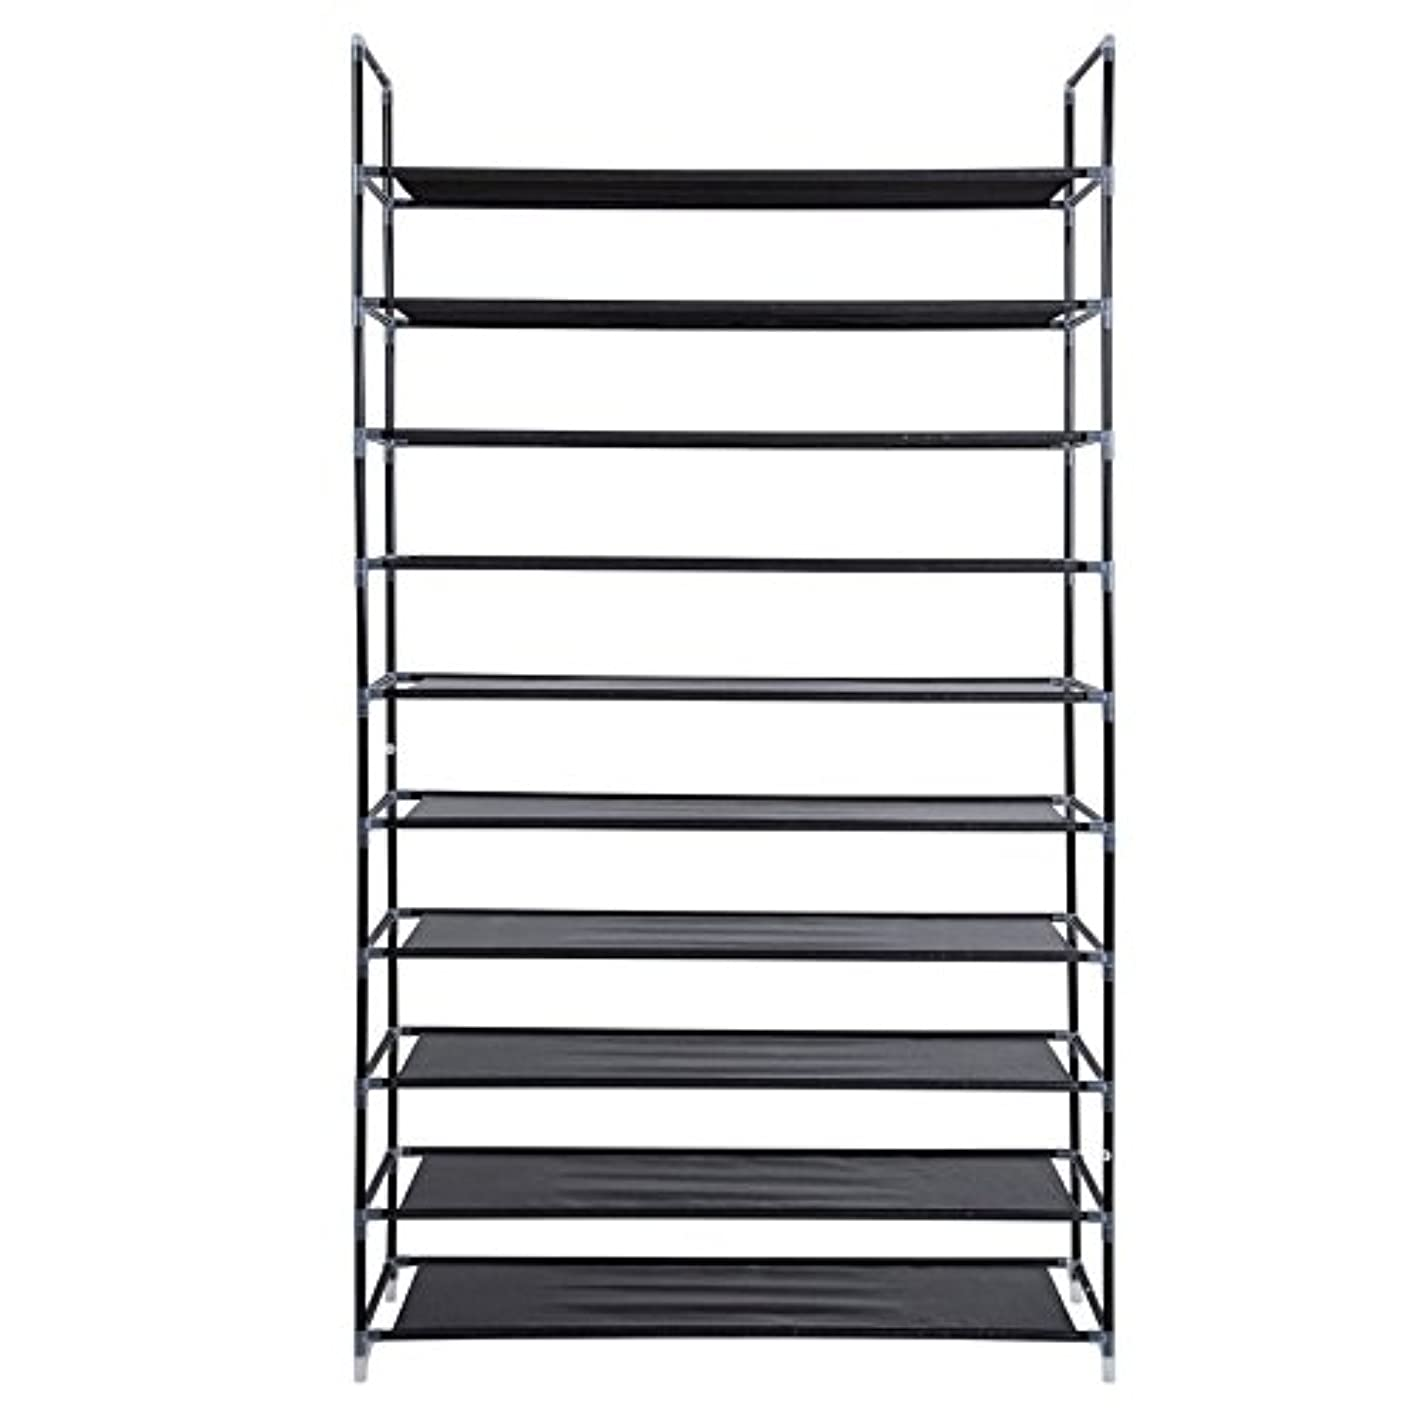 10 Tiers Shoe with Handle Simple Assembly 50 Pairs Non-Woven Fabric Shoe Tower Storage Organizer Cabinet for Bedroom Entryway Hallway (Black-10 Tiers)